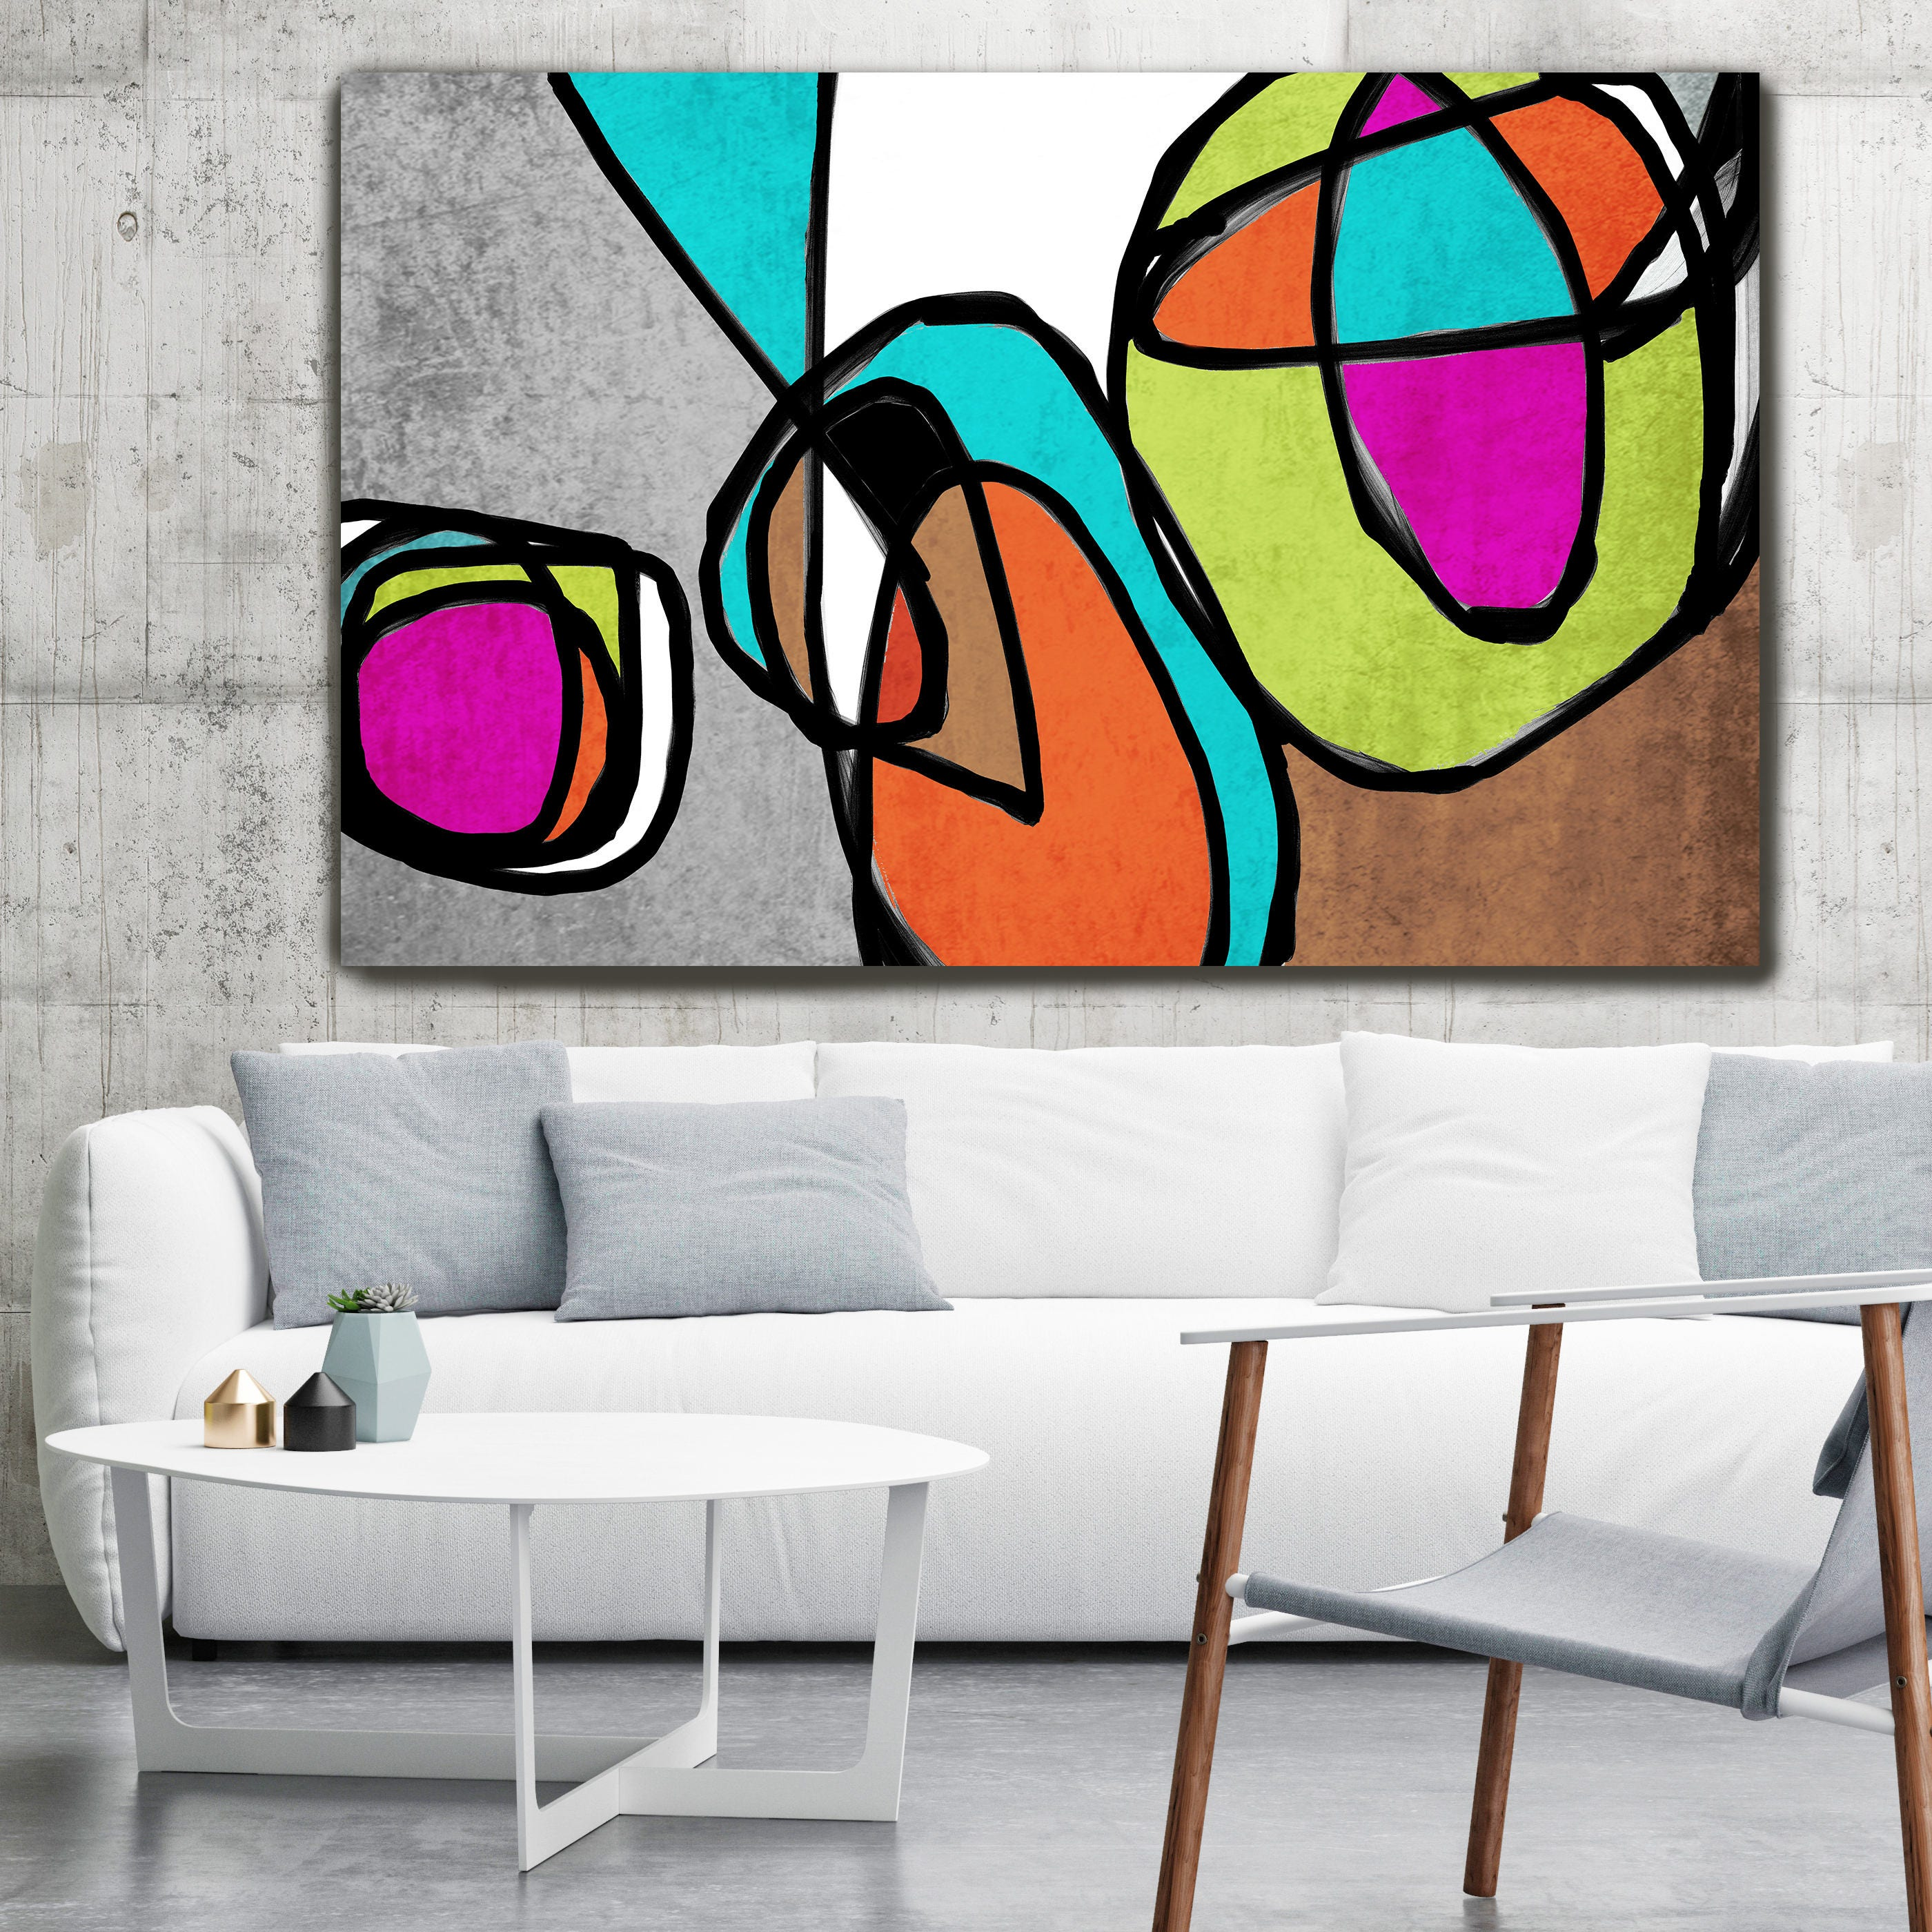 Mid Century Wall Art Abstract Painting Original Mid Century Modern Decor Original Artwork Home Decor Art Abstract Print Canvas Art